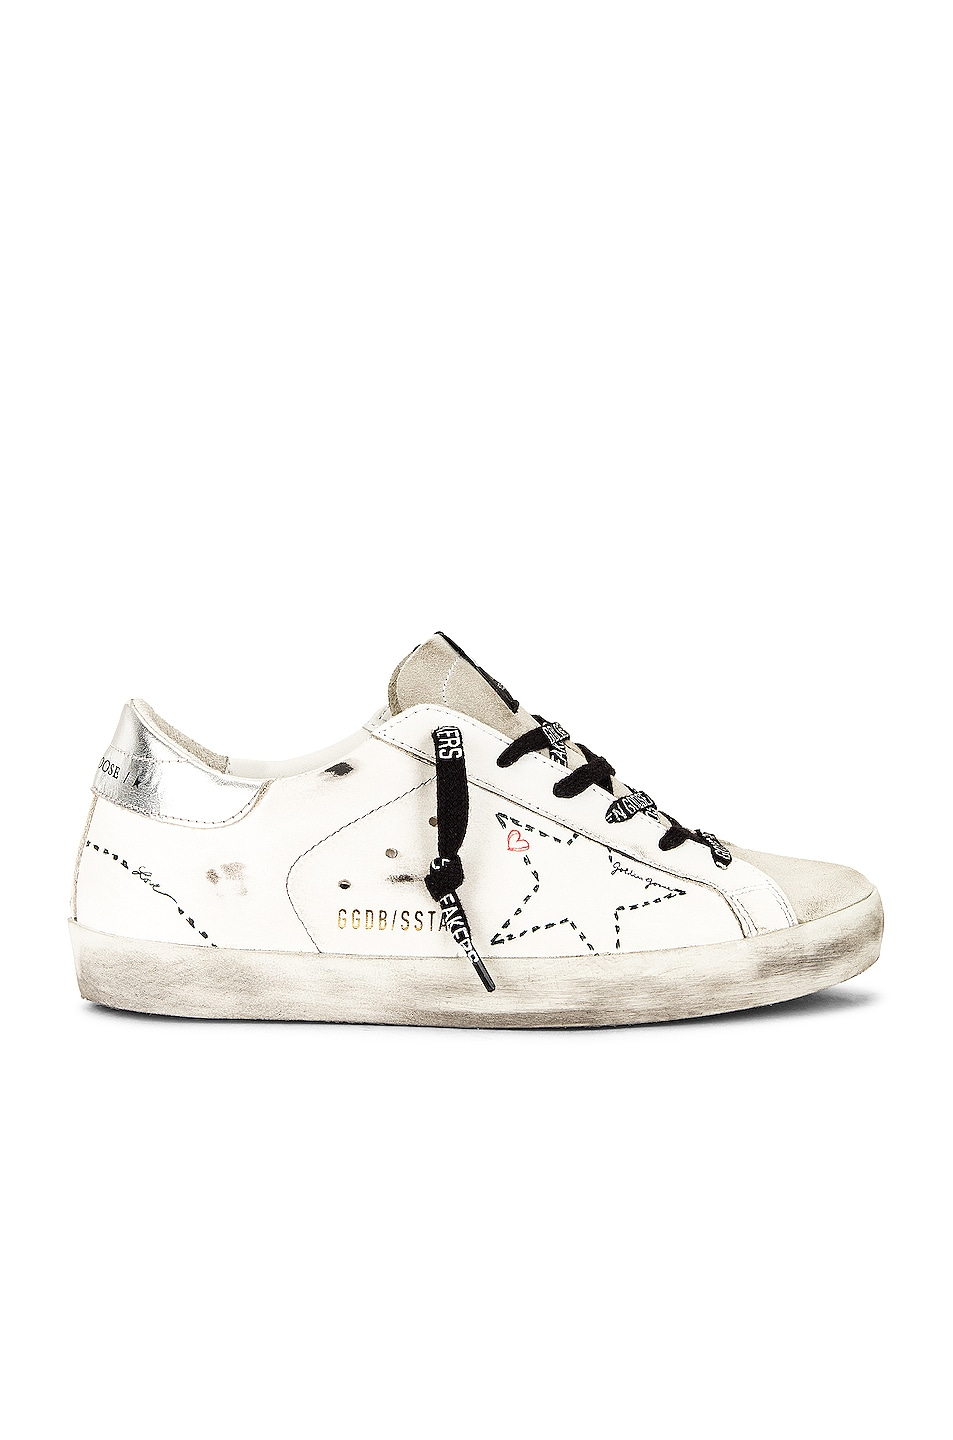 Image 1 of Golden Goose Superstar Sneaker in Ice, White & Silver